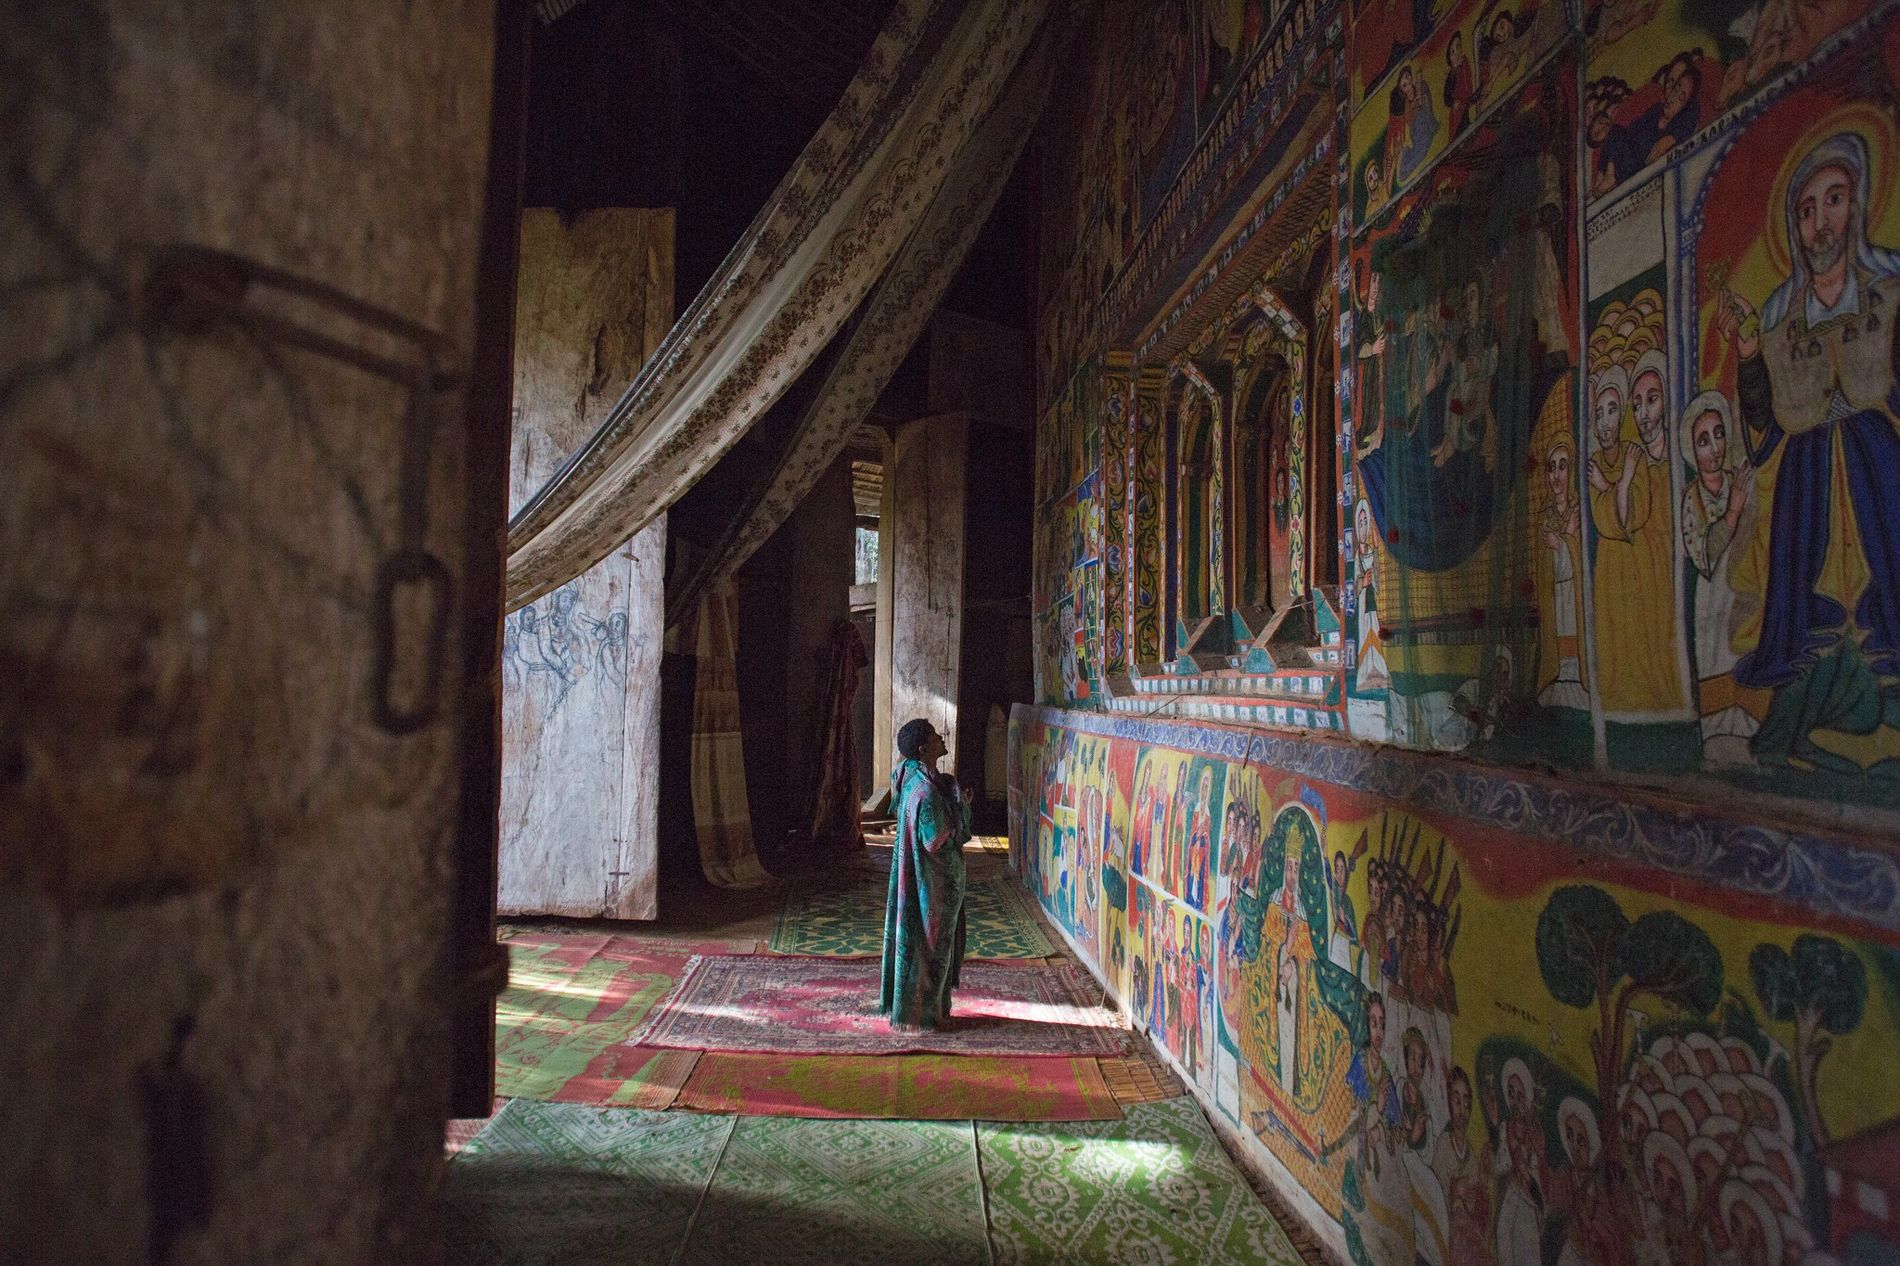 The sanctum of Ural Kidane church is decorated with elaborate, ornate narrative paintings, before which a ...